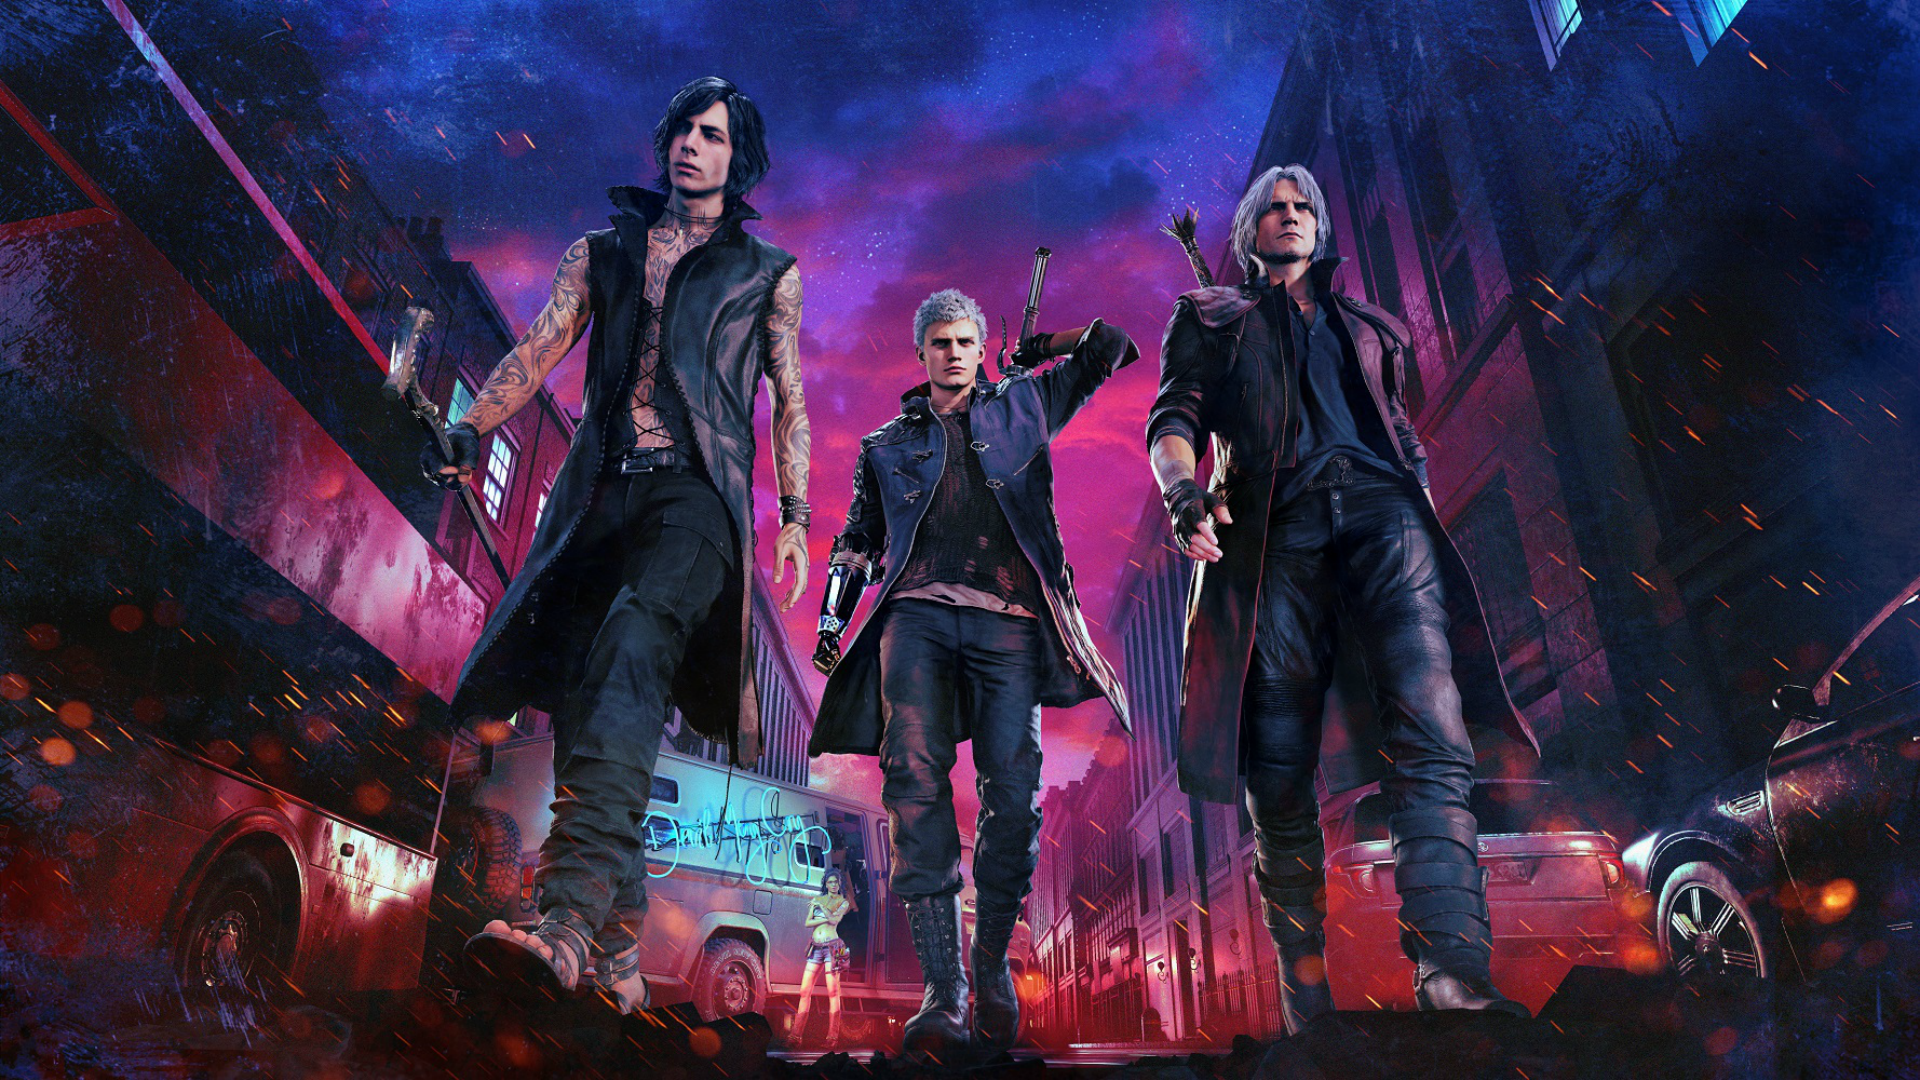 Devil May Cry 5 Wallpapers 4k hd